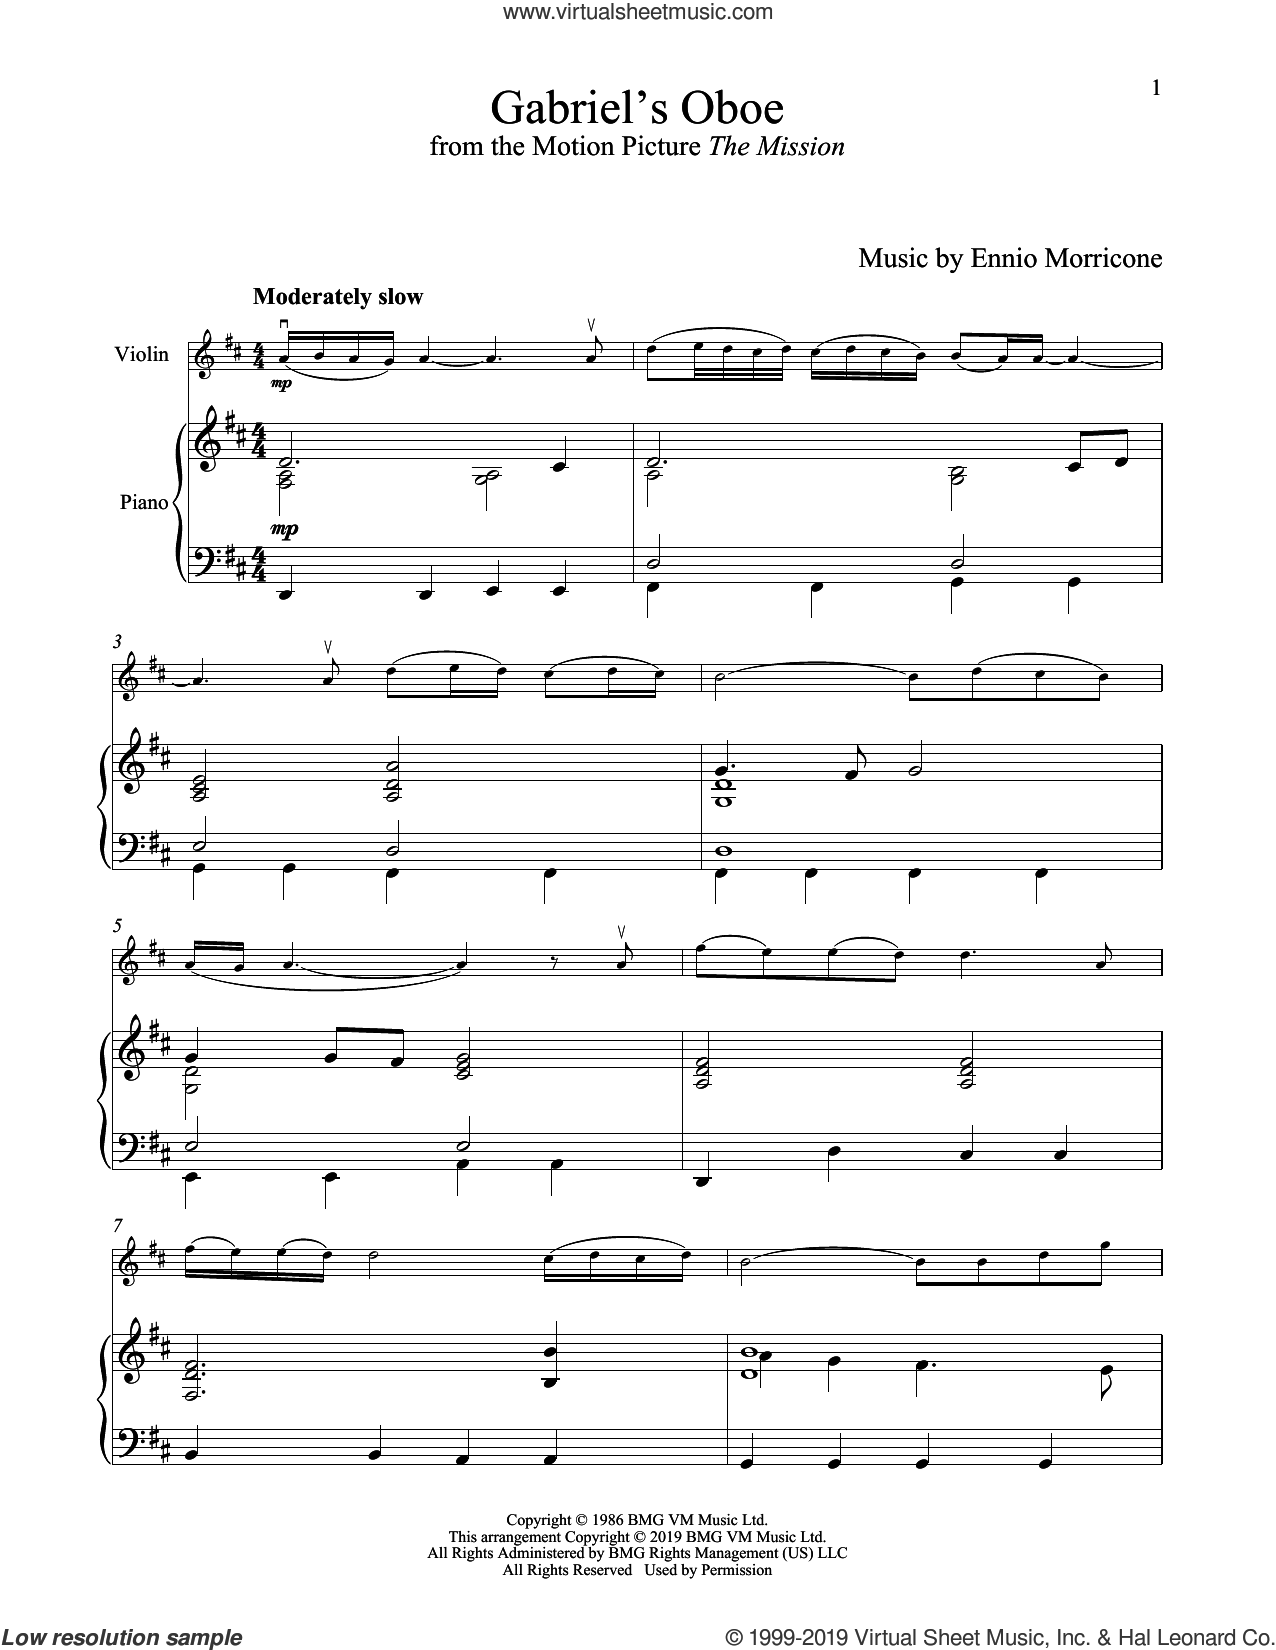 Gabriel's Oboe (from The Mission) sheet music for violin and piano by Ennio Morricone, wedding score, intermediate skill level